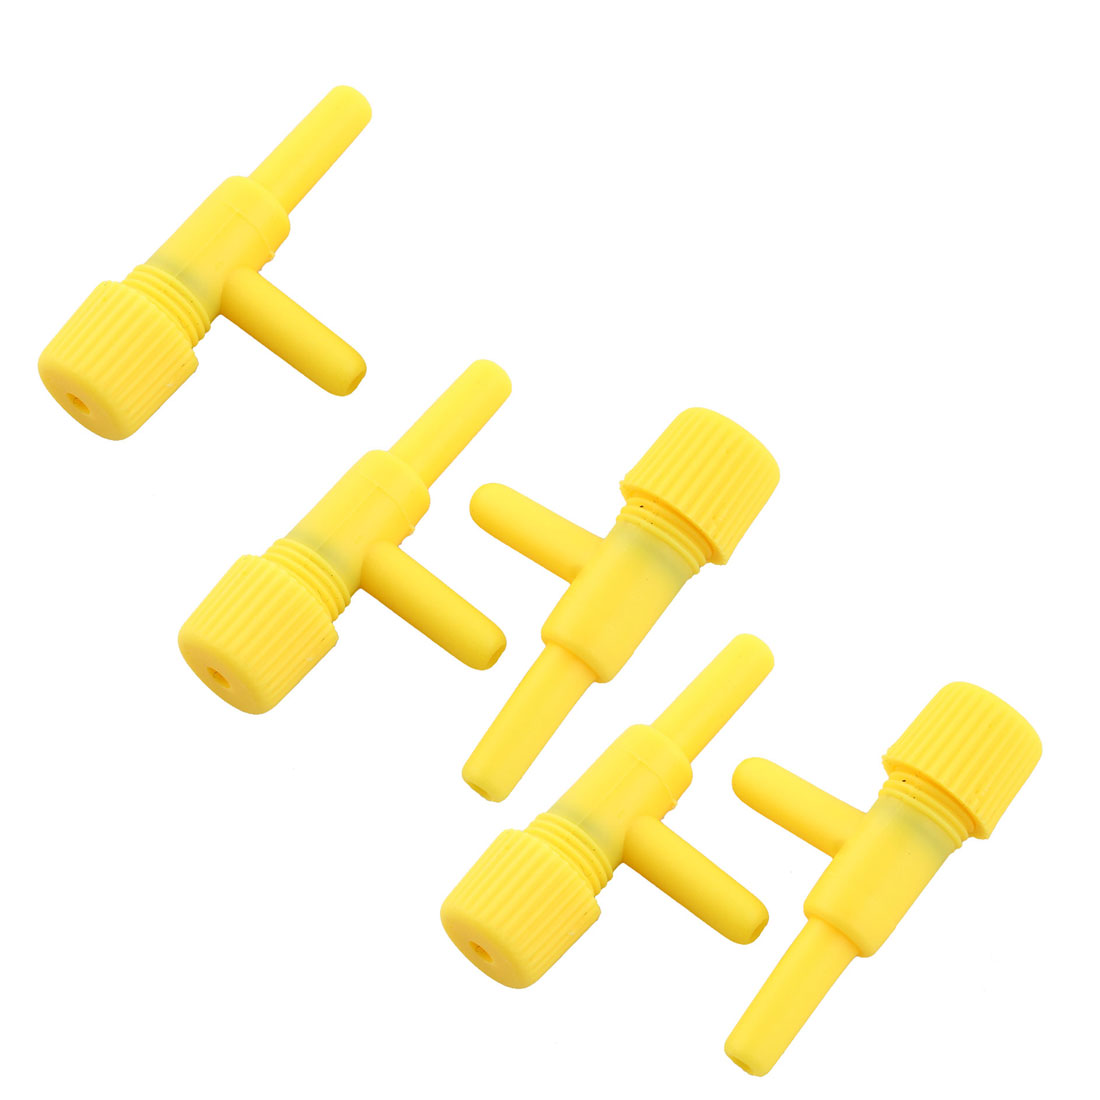 Plastic Yellow Aquarium Pump Air Valves Splitter Tube Connector 5 Pcs